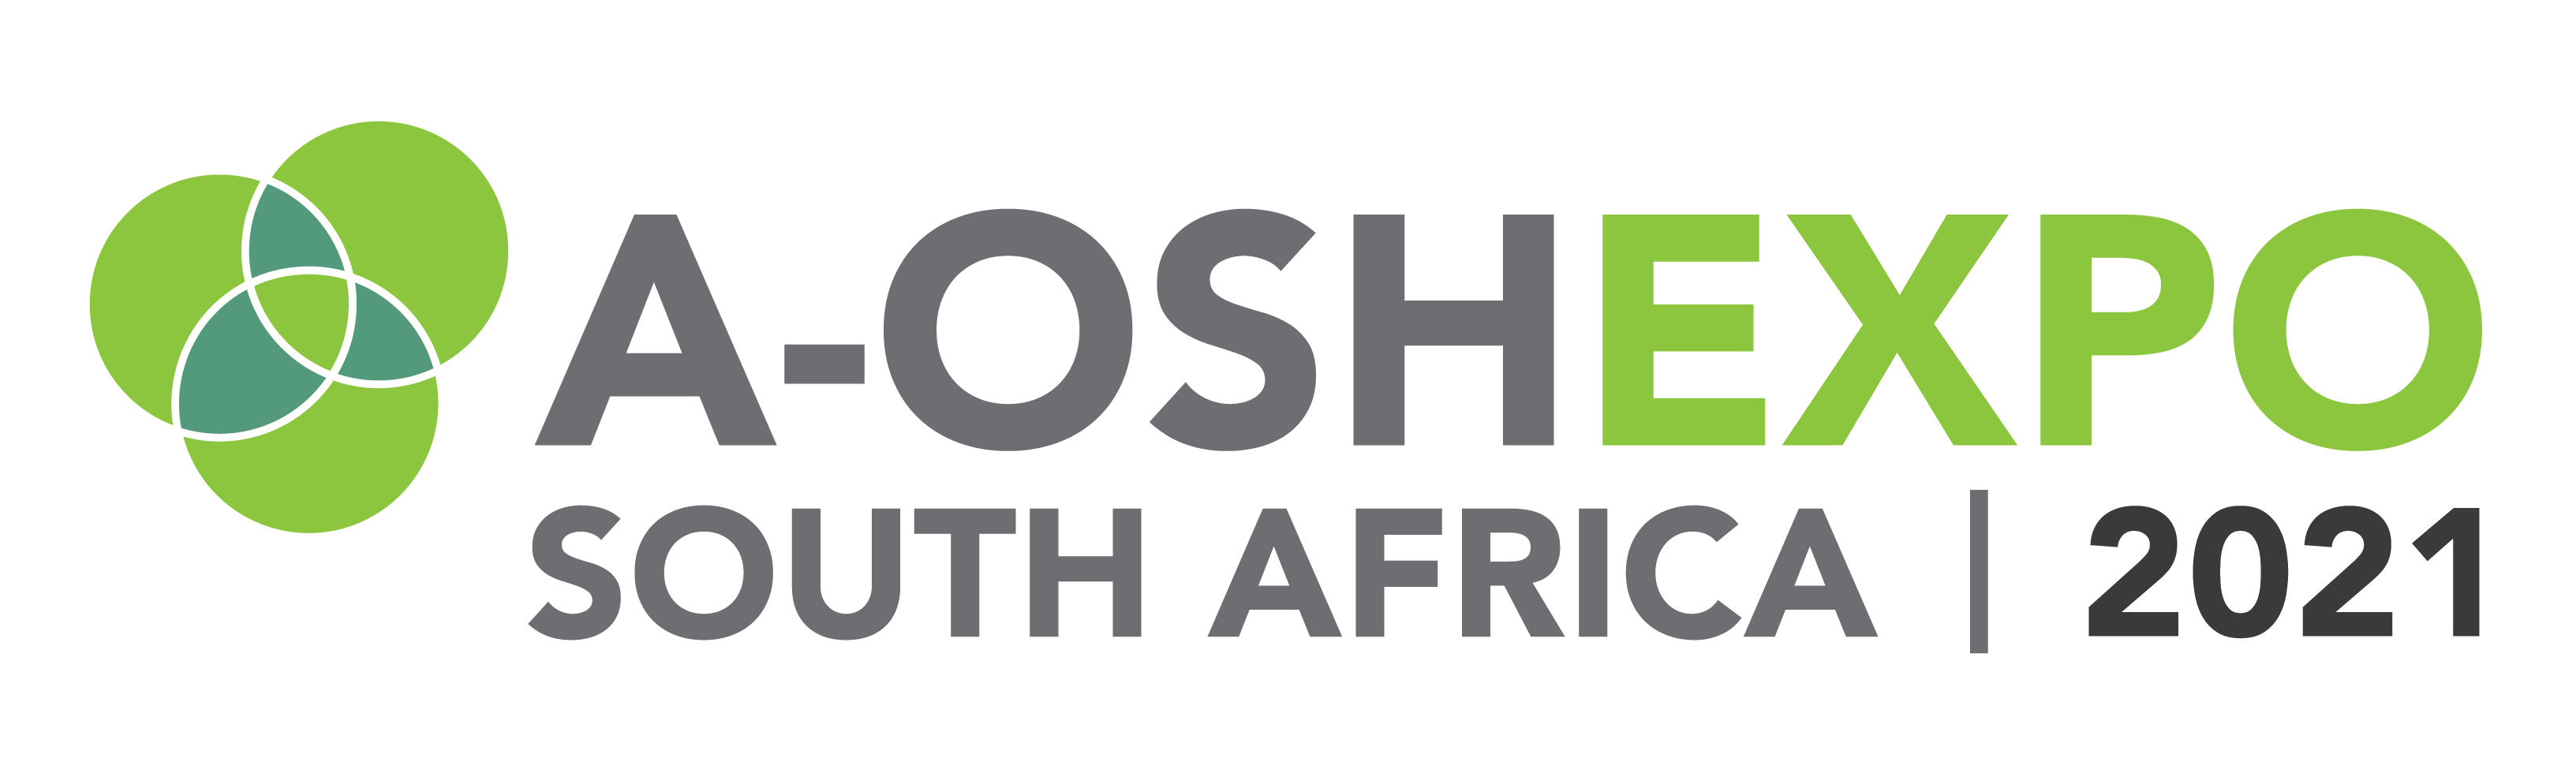 A-OSH EXPO | Africa's Occupational Health & Safety Event